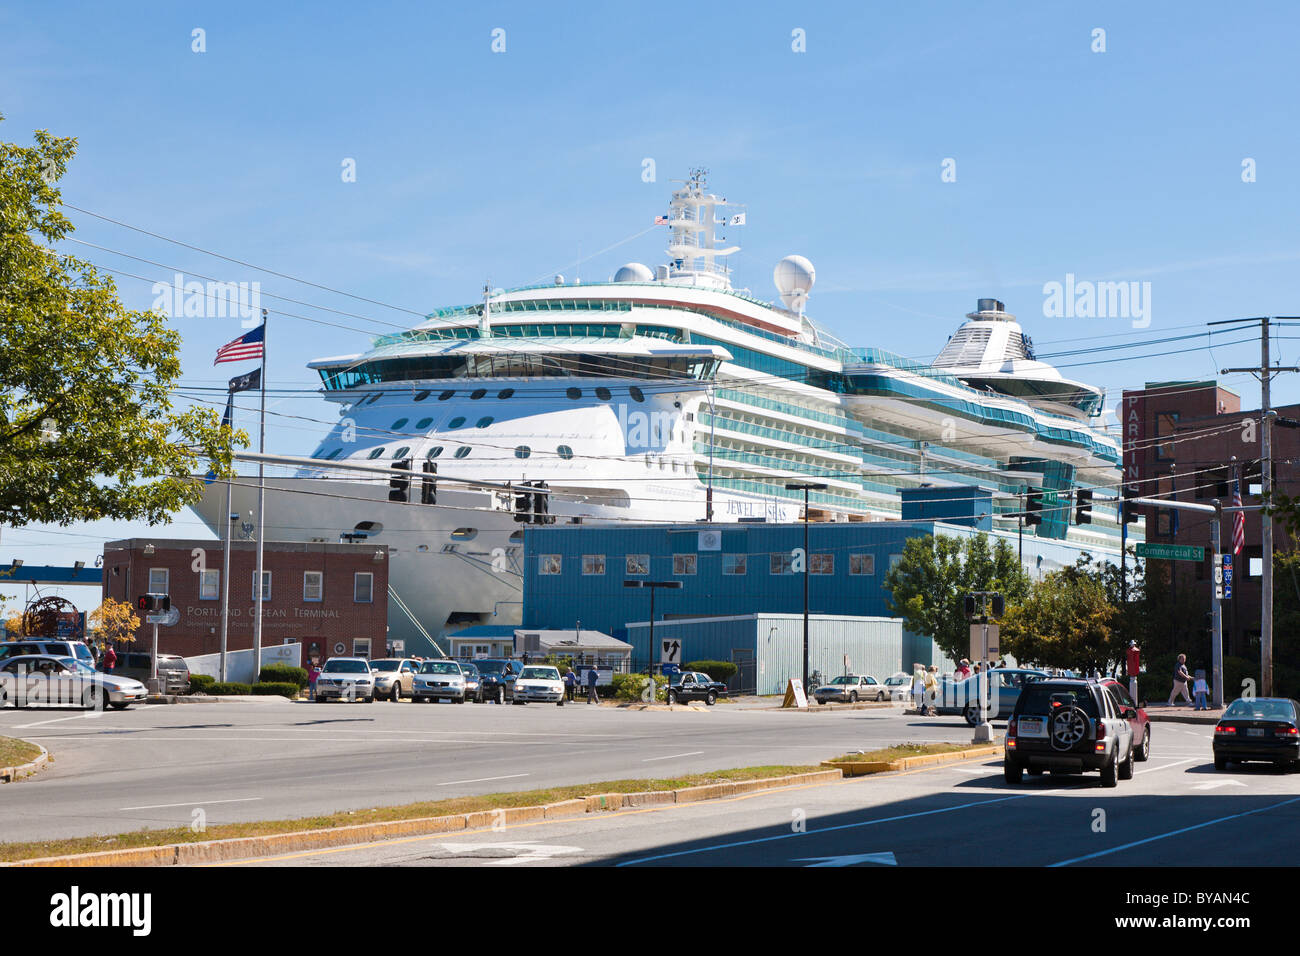 Royal Caribbeans Jewel Of The Seas Cruise Ship In Port At - Portland maine cruise ship terminal